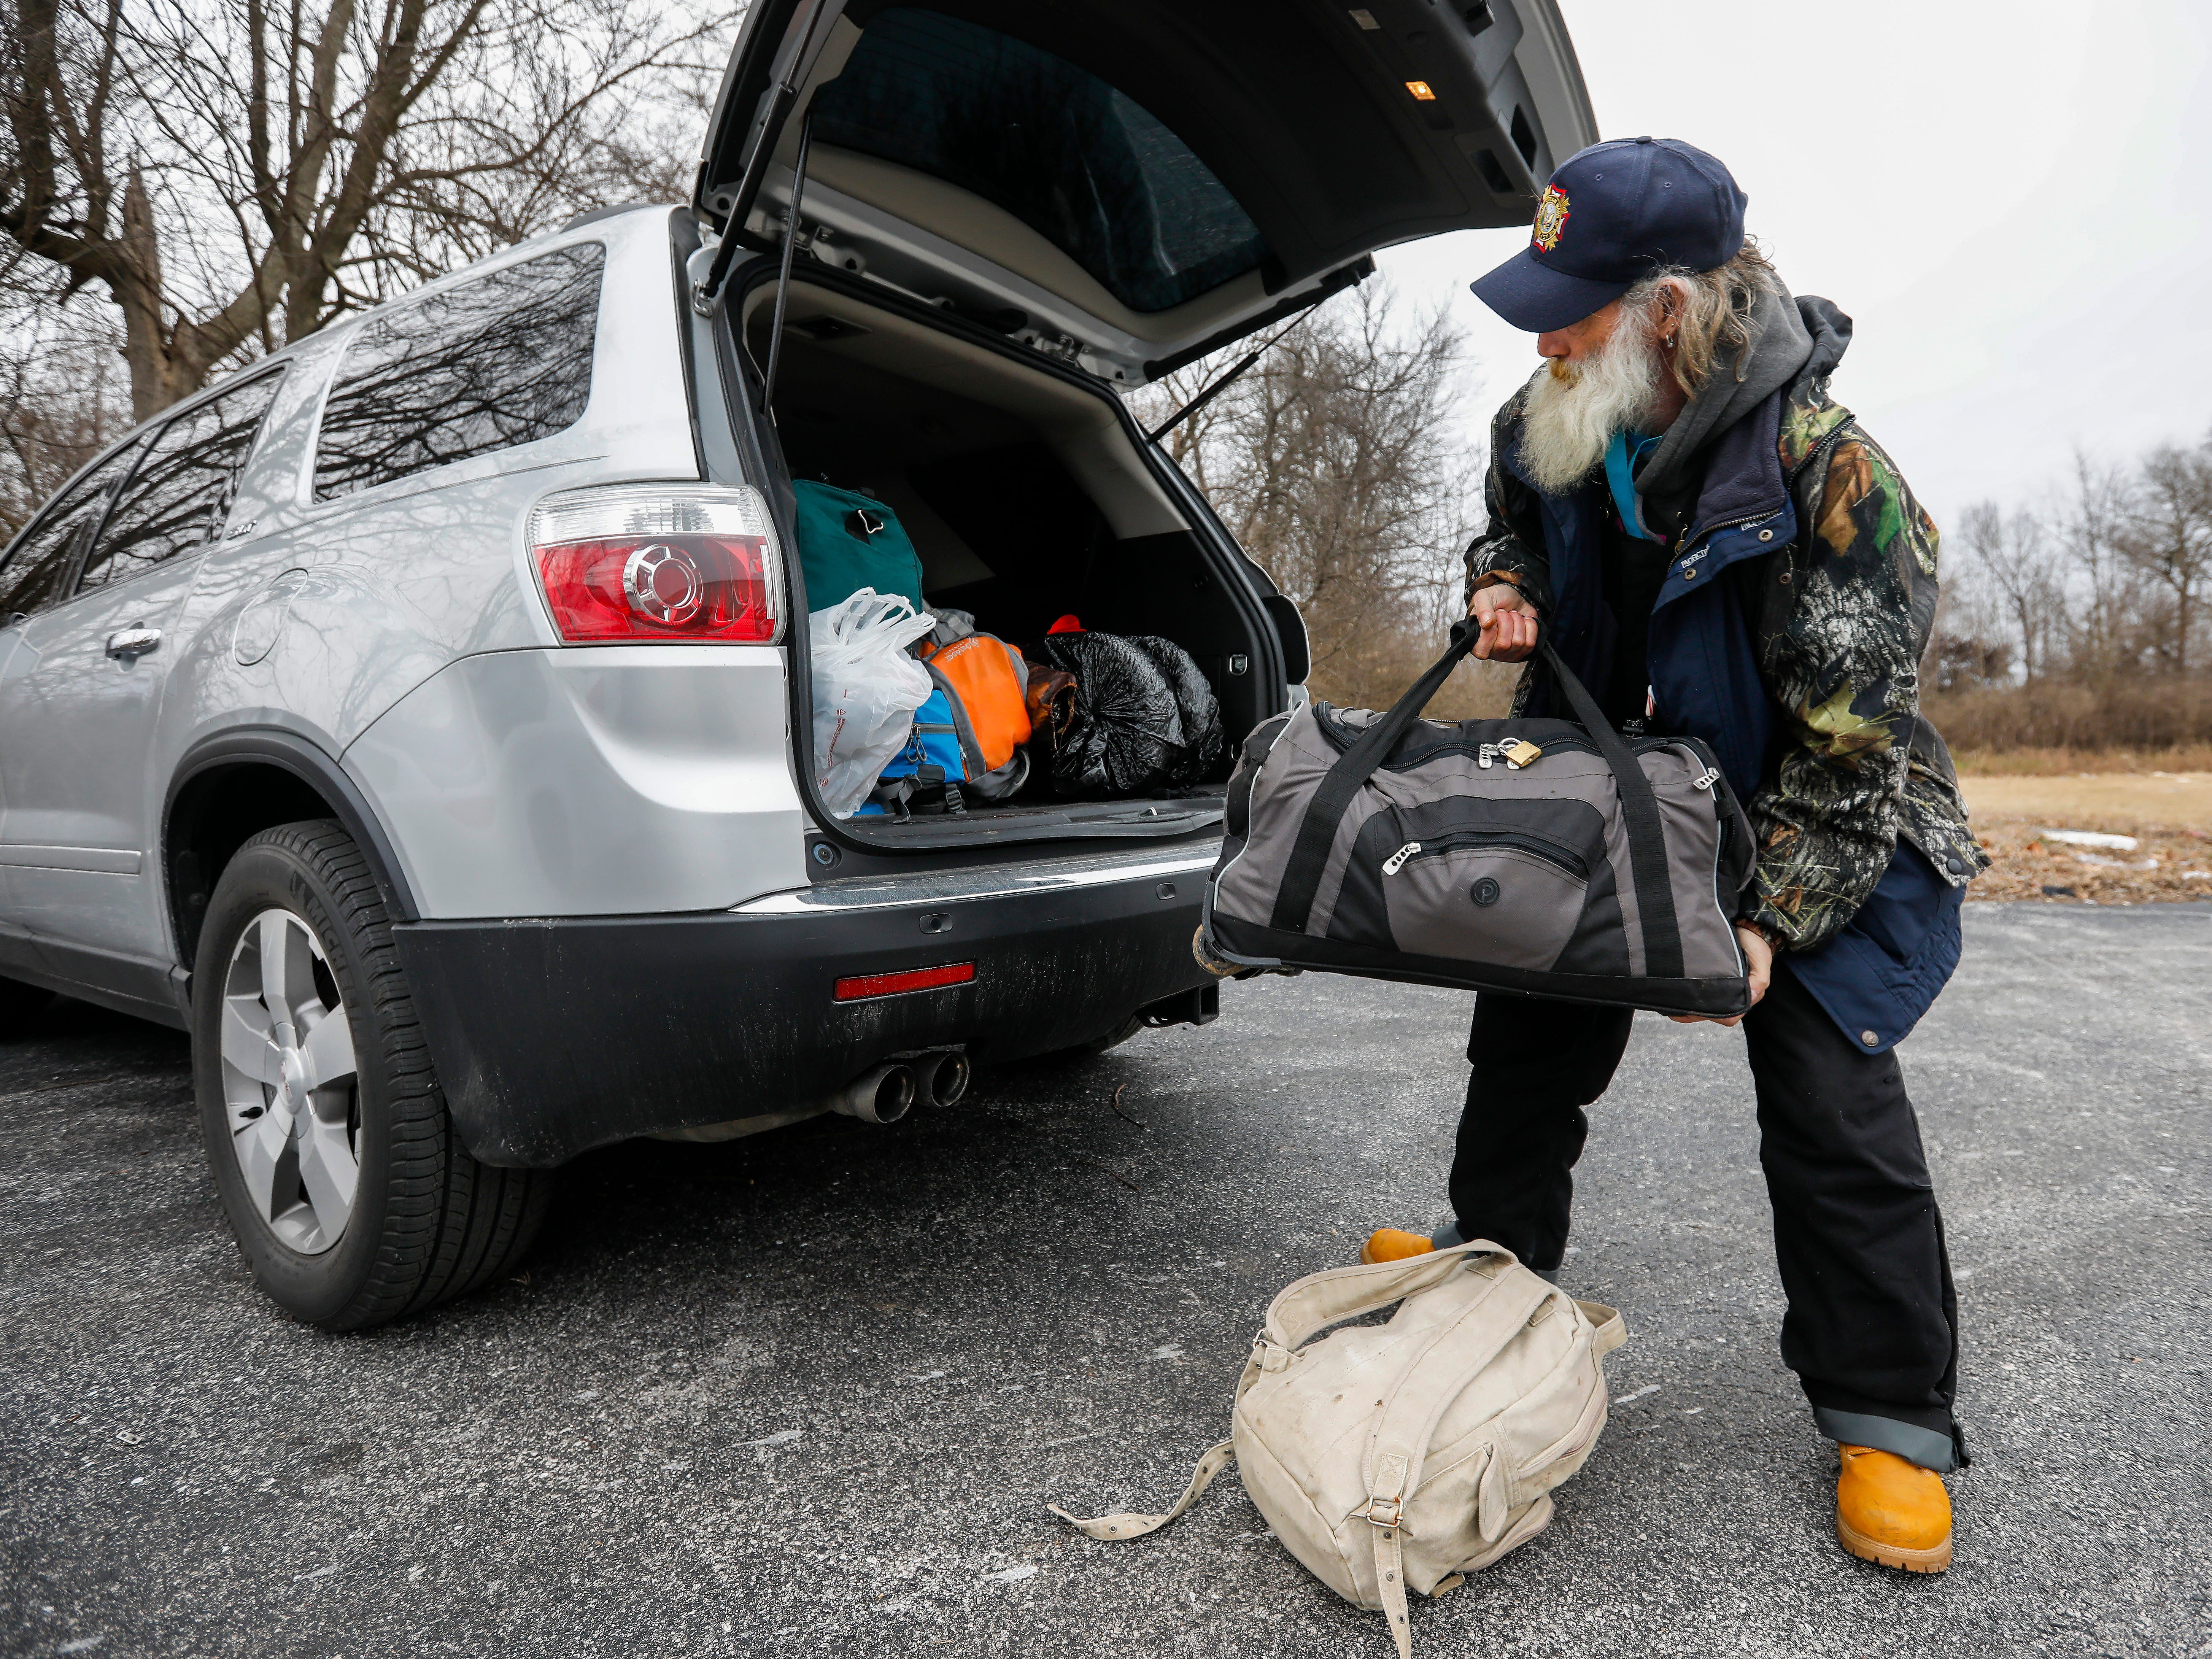 Gil Rife, who has been homeless for 3 years, loads his belongings into Stephanie Appleby's vehicle as he prepared to move into Eden Village on Thursday, Feb. 21, 2019.